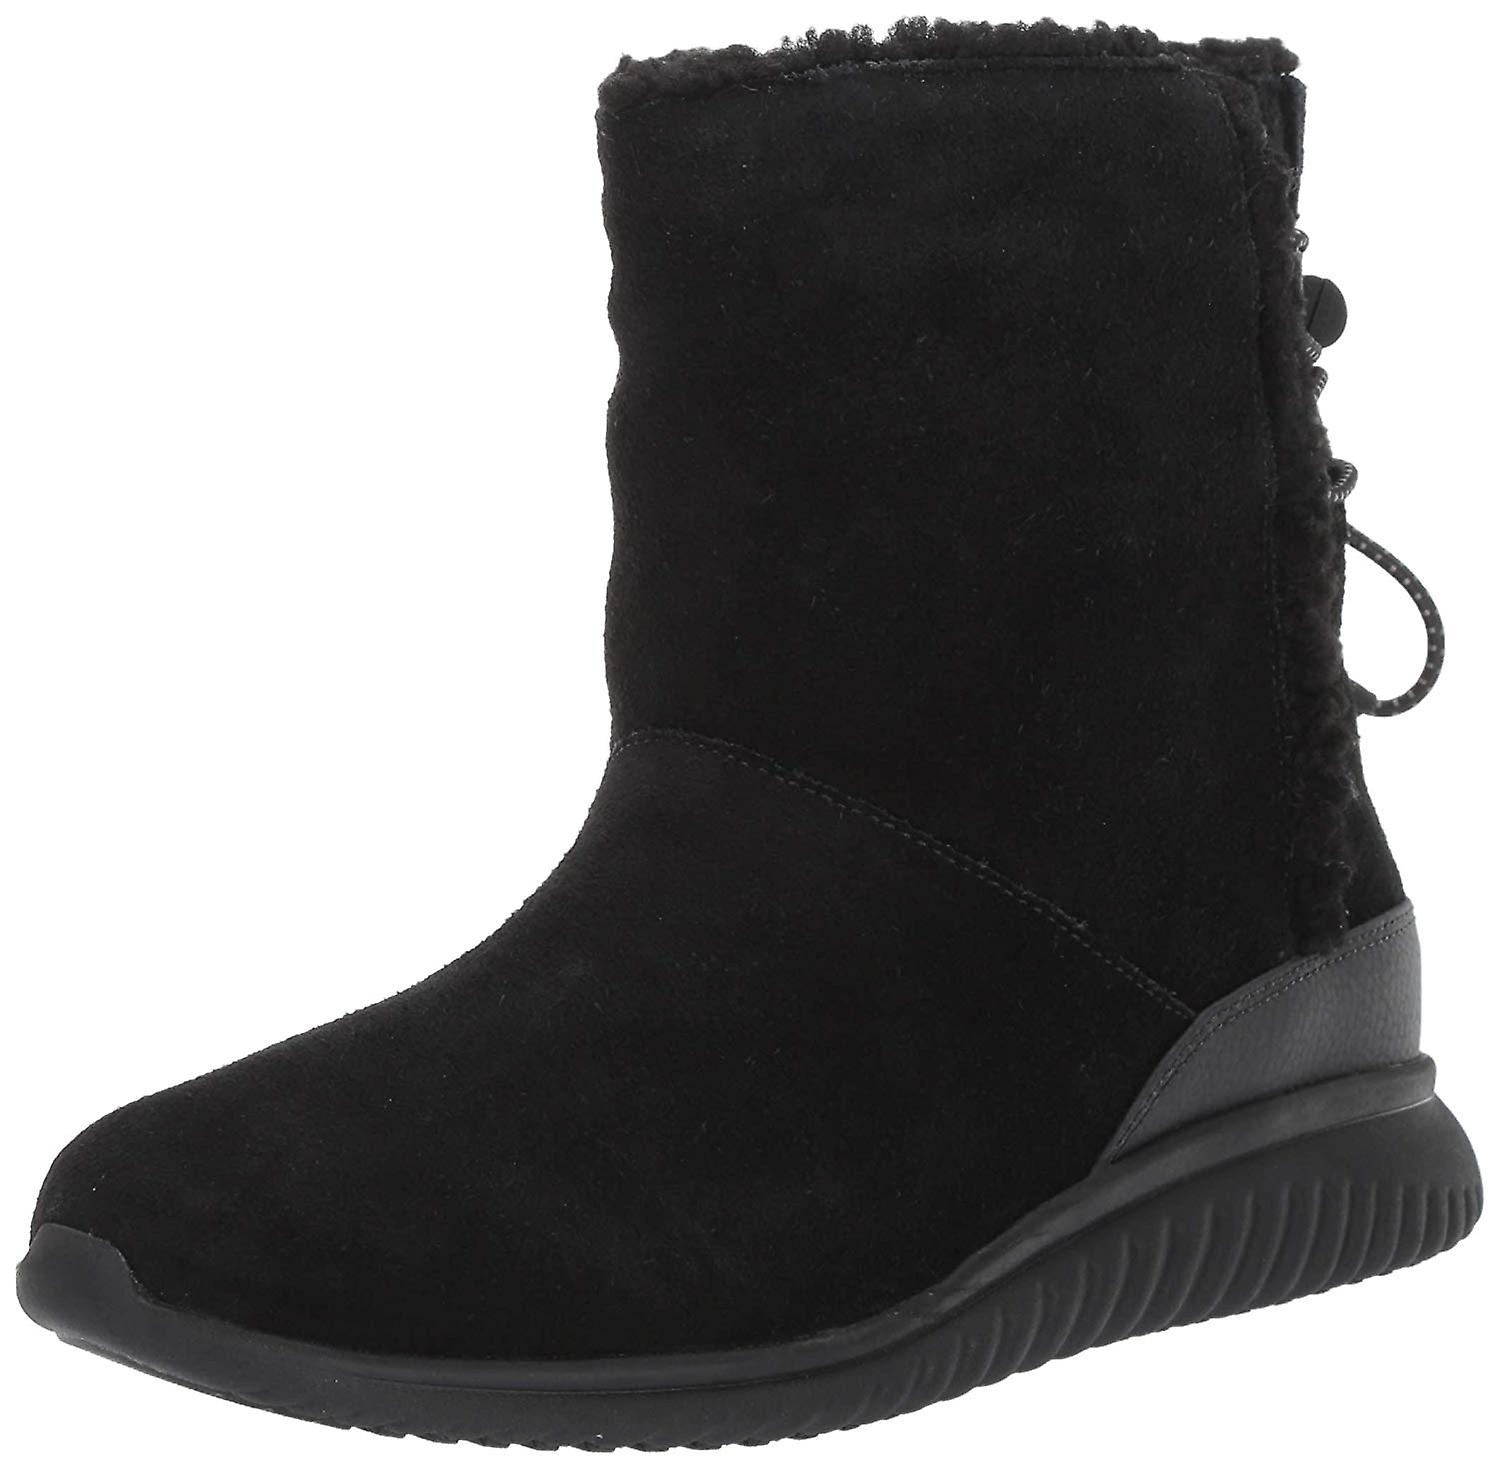 Cole Haan Womens StudioGrand Faux Fur Closed Toe Ankle Cold Weather Boots MUBBs